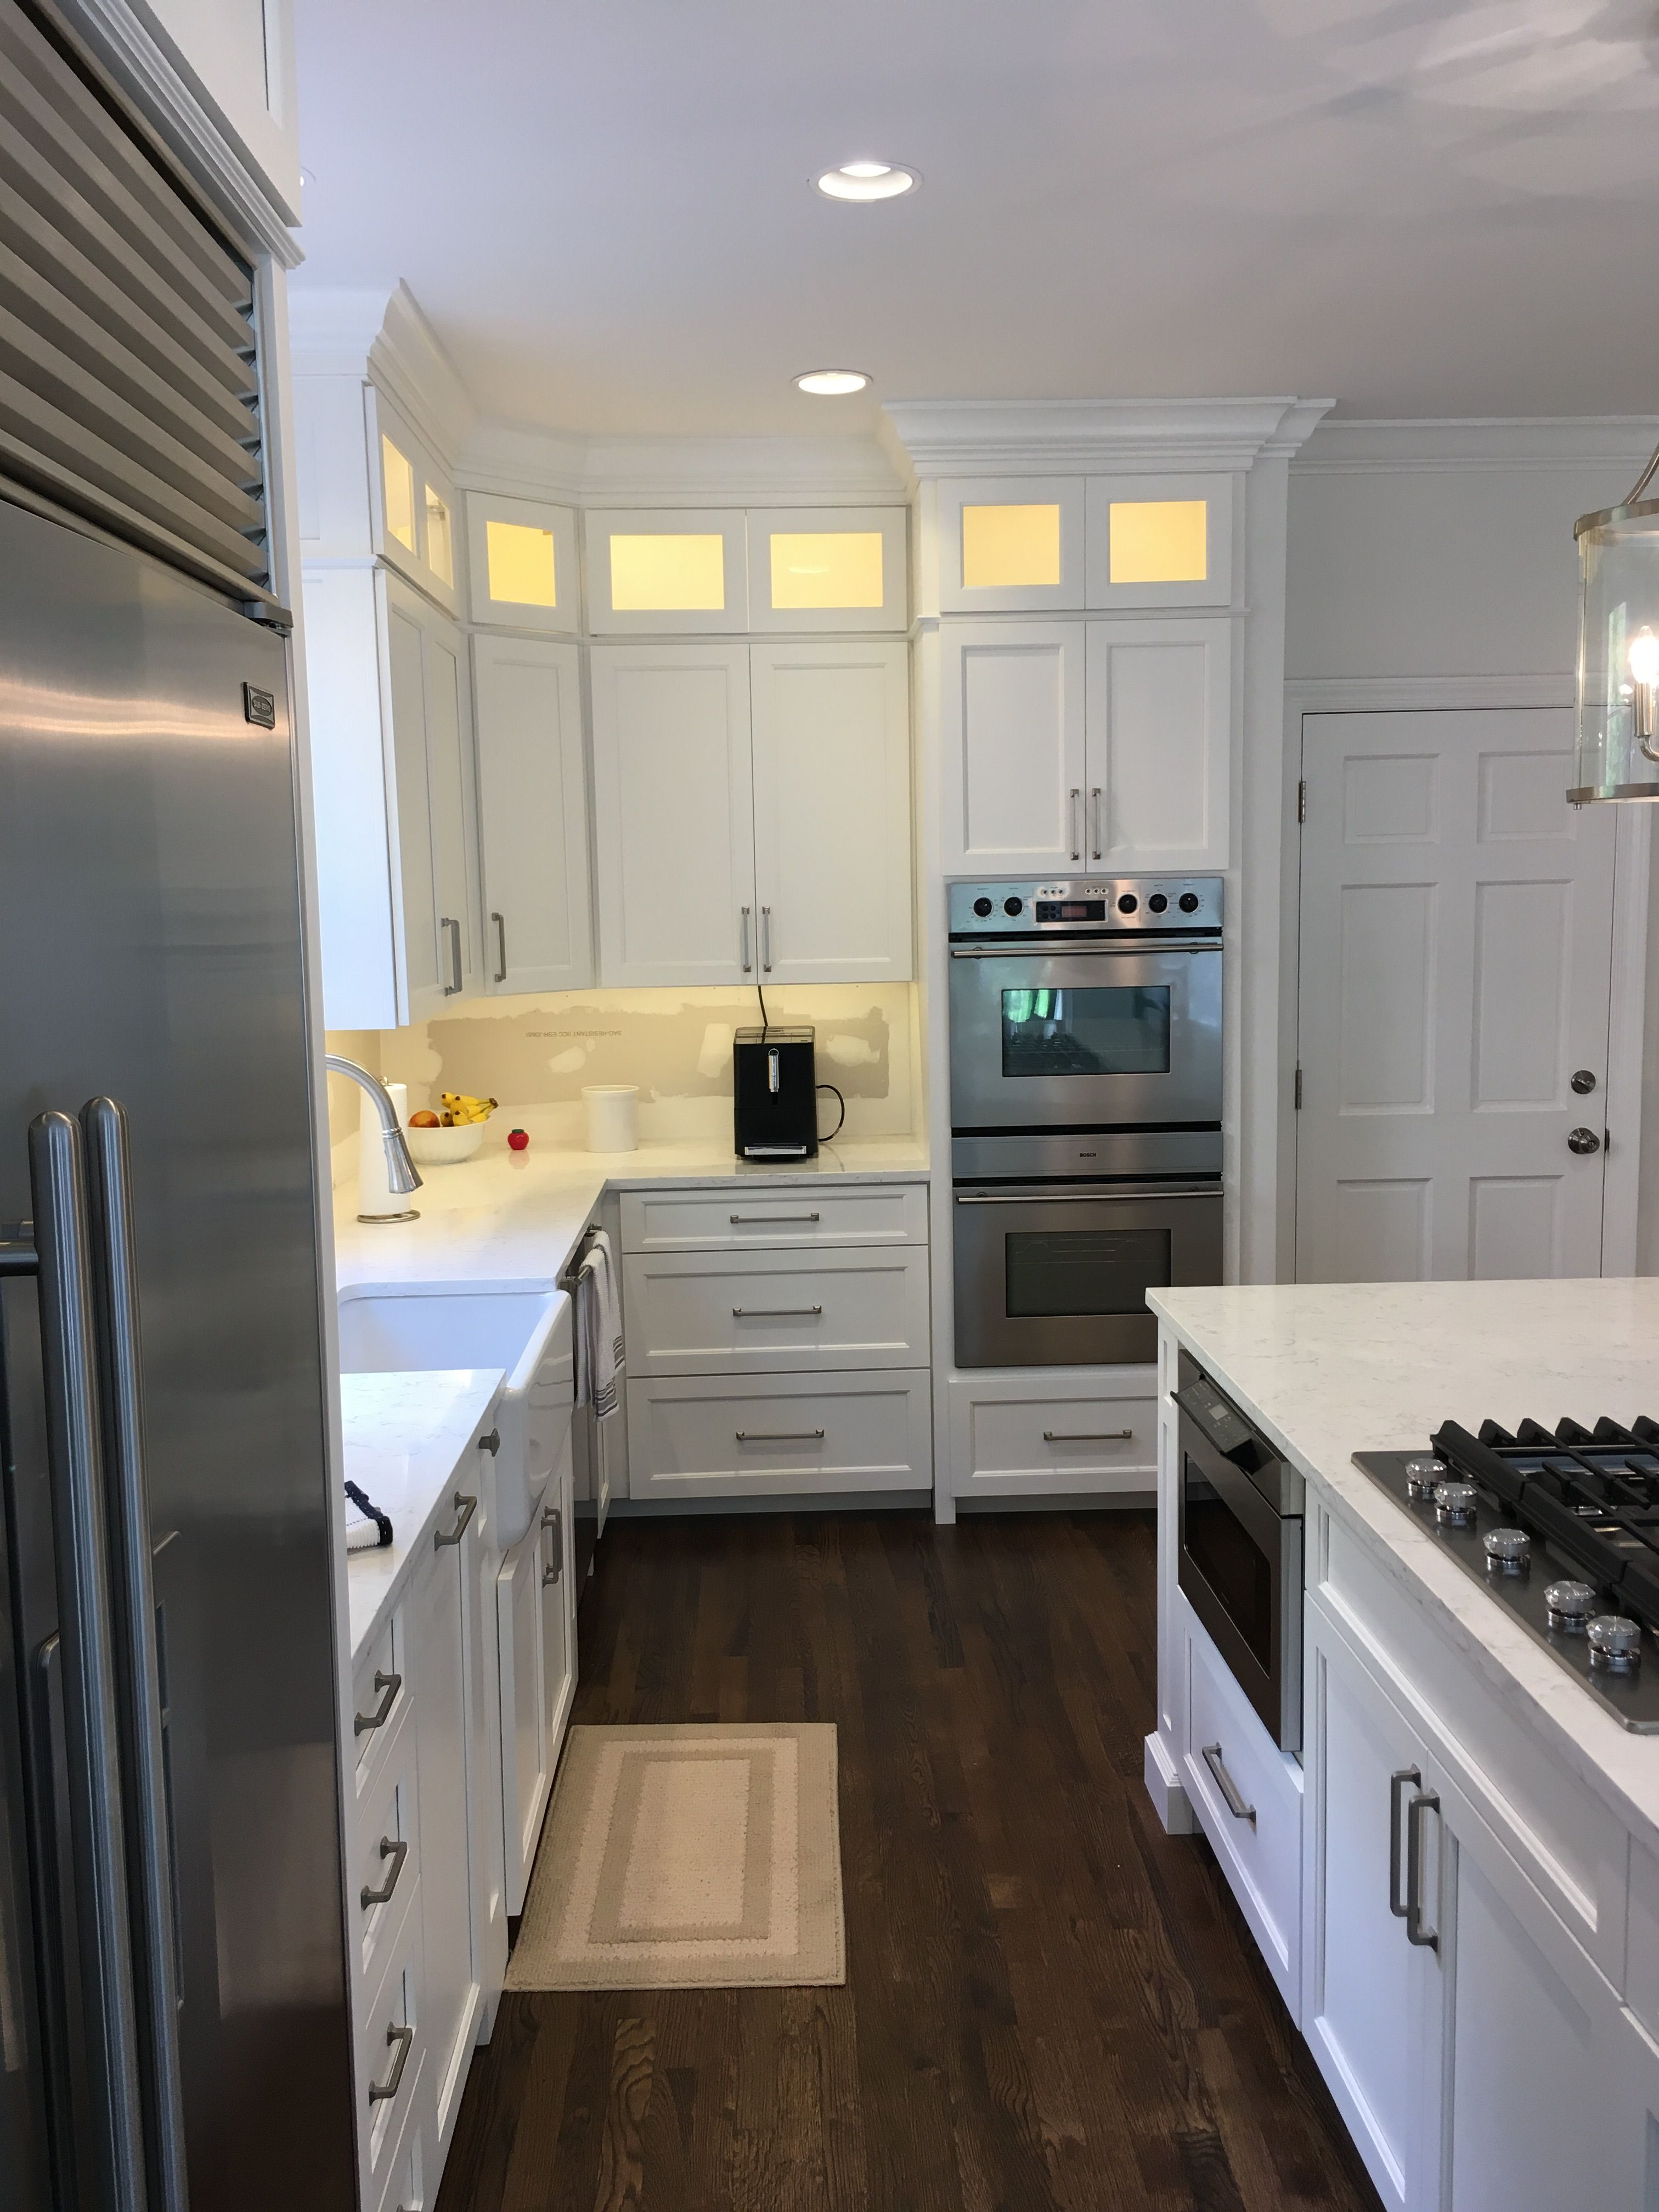 Shaker style cabinets with glass doors, led lighting ...